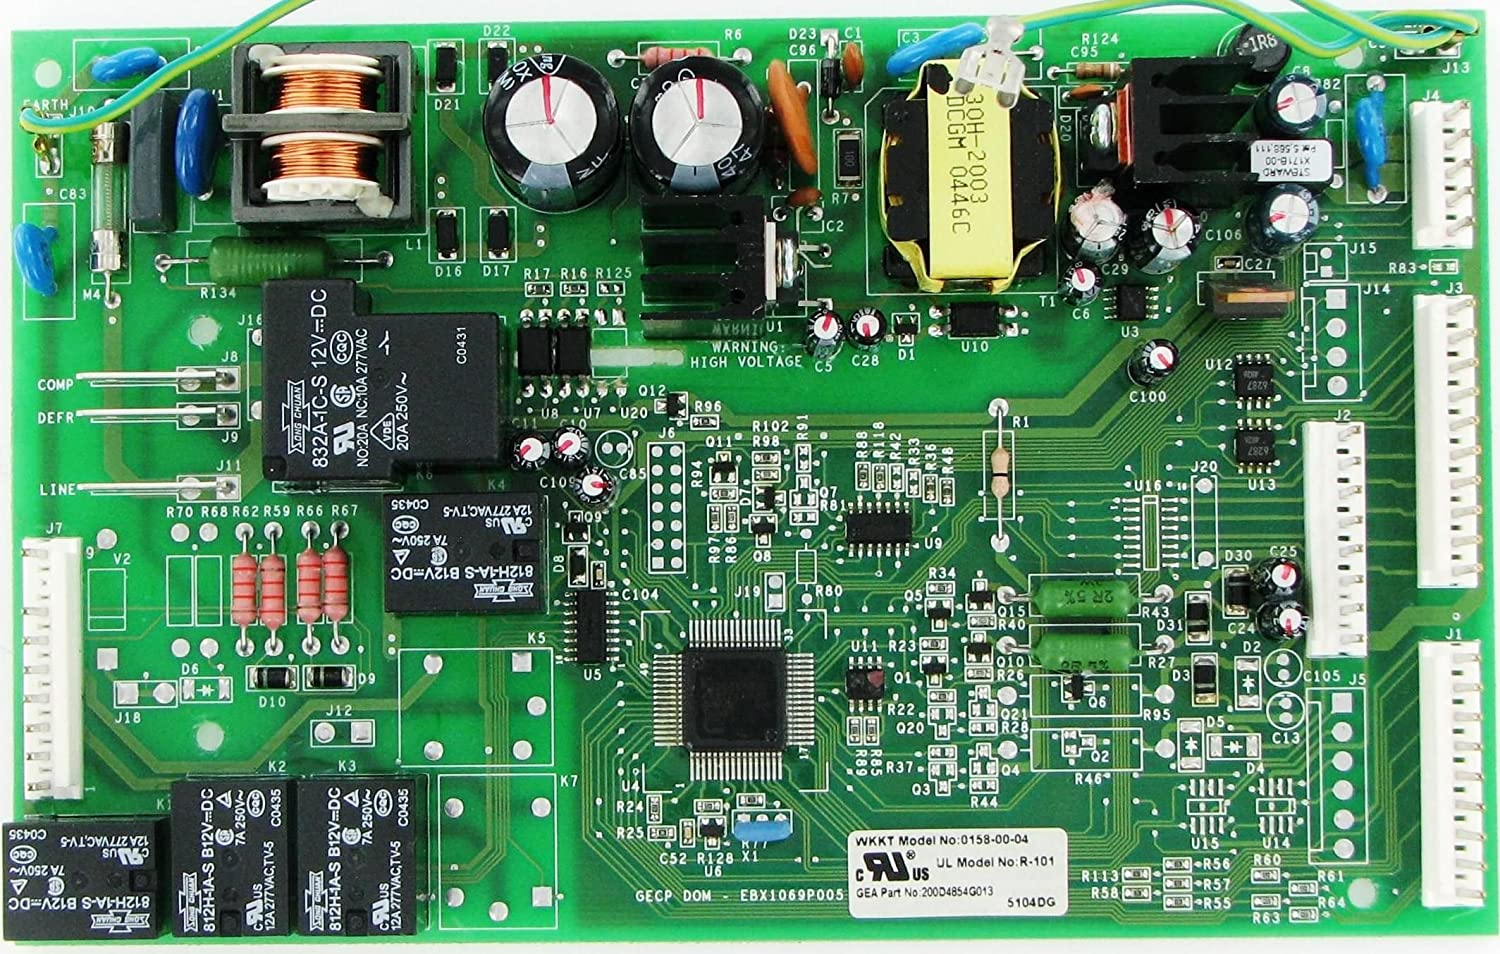 Refrigerator Main Control Board WR55X10942 works for GE Various Models